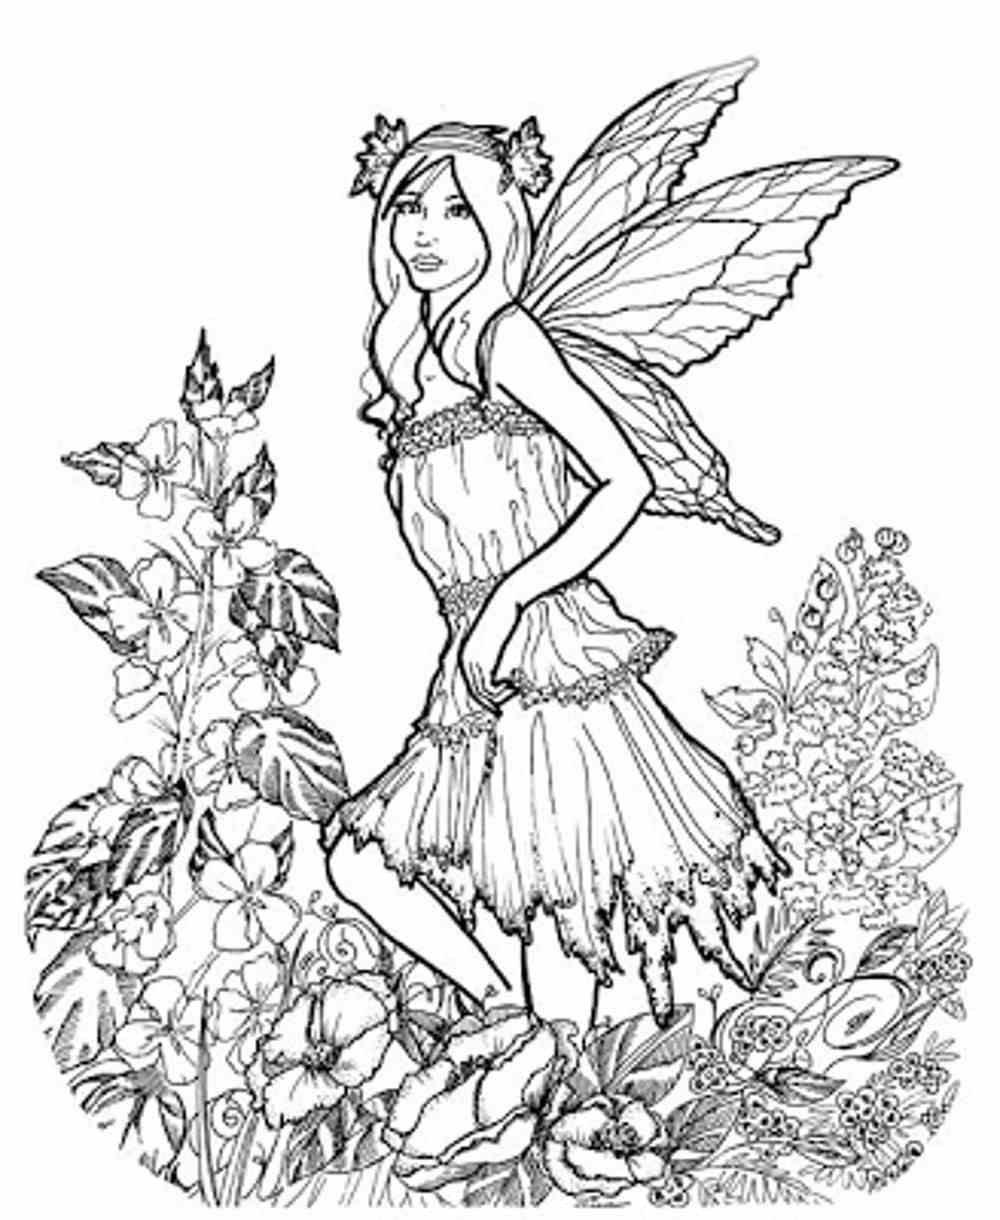 owlcoloringpagesforadults Spring coloring pages, Owl